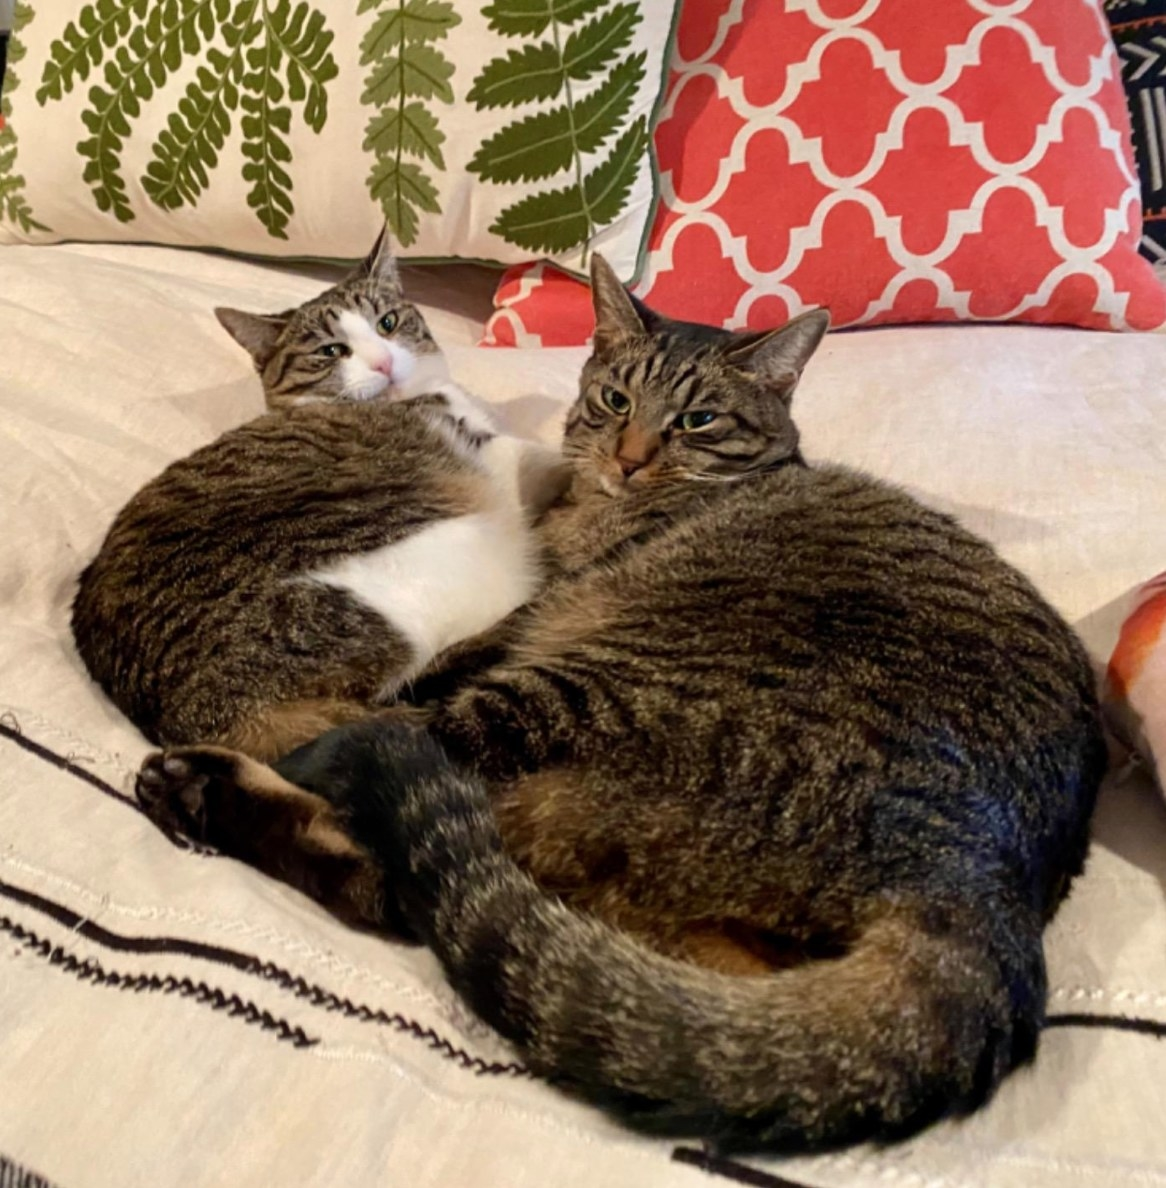 The reviewer's cats relaxing after the classic calming diffuser